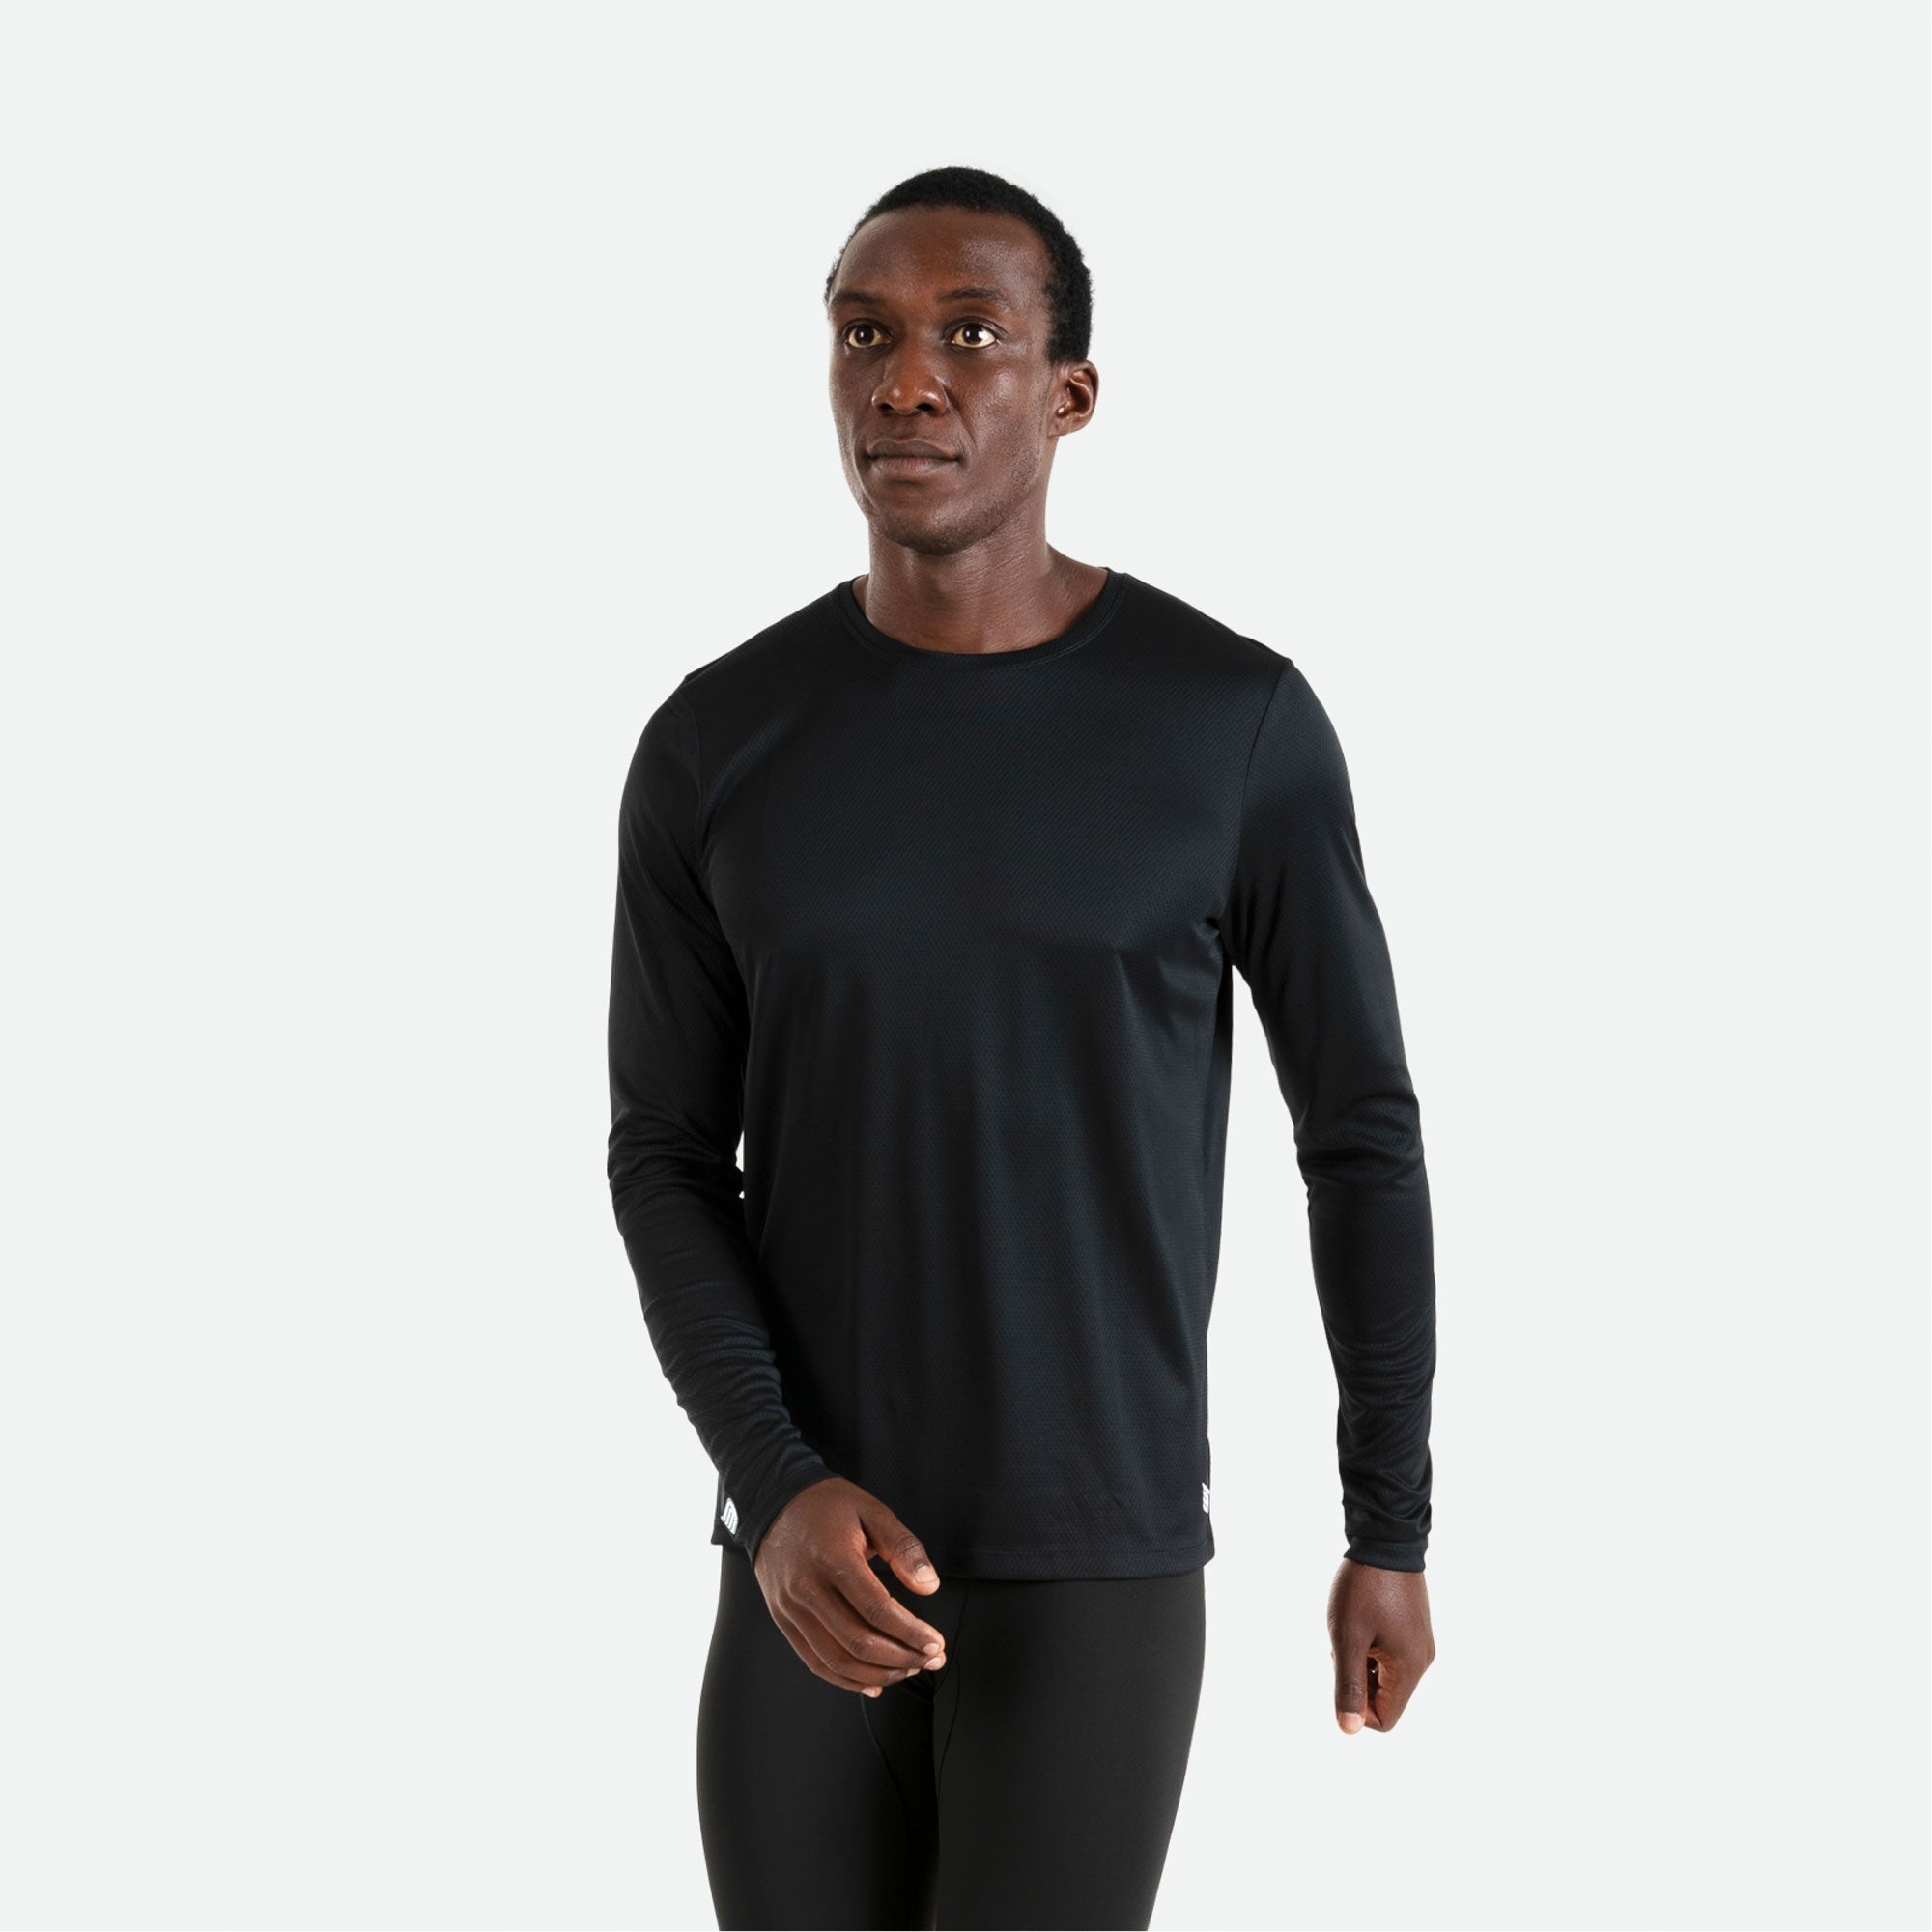 Our Pressio men's black Hāpai long sleeve t-shirt features EcoTECH MF fabric which has dual filament recycled polyester yarns from Unifi for superior moisture control to keep you dry.